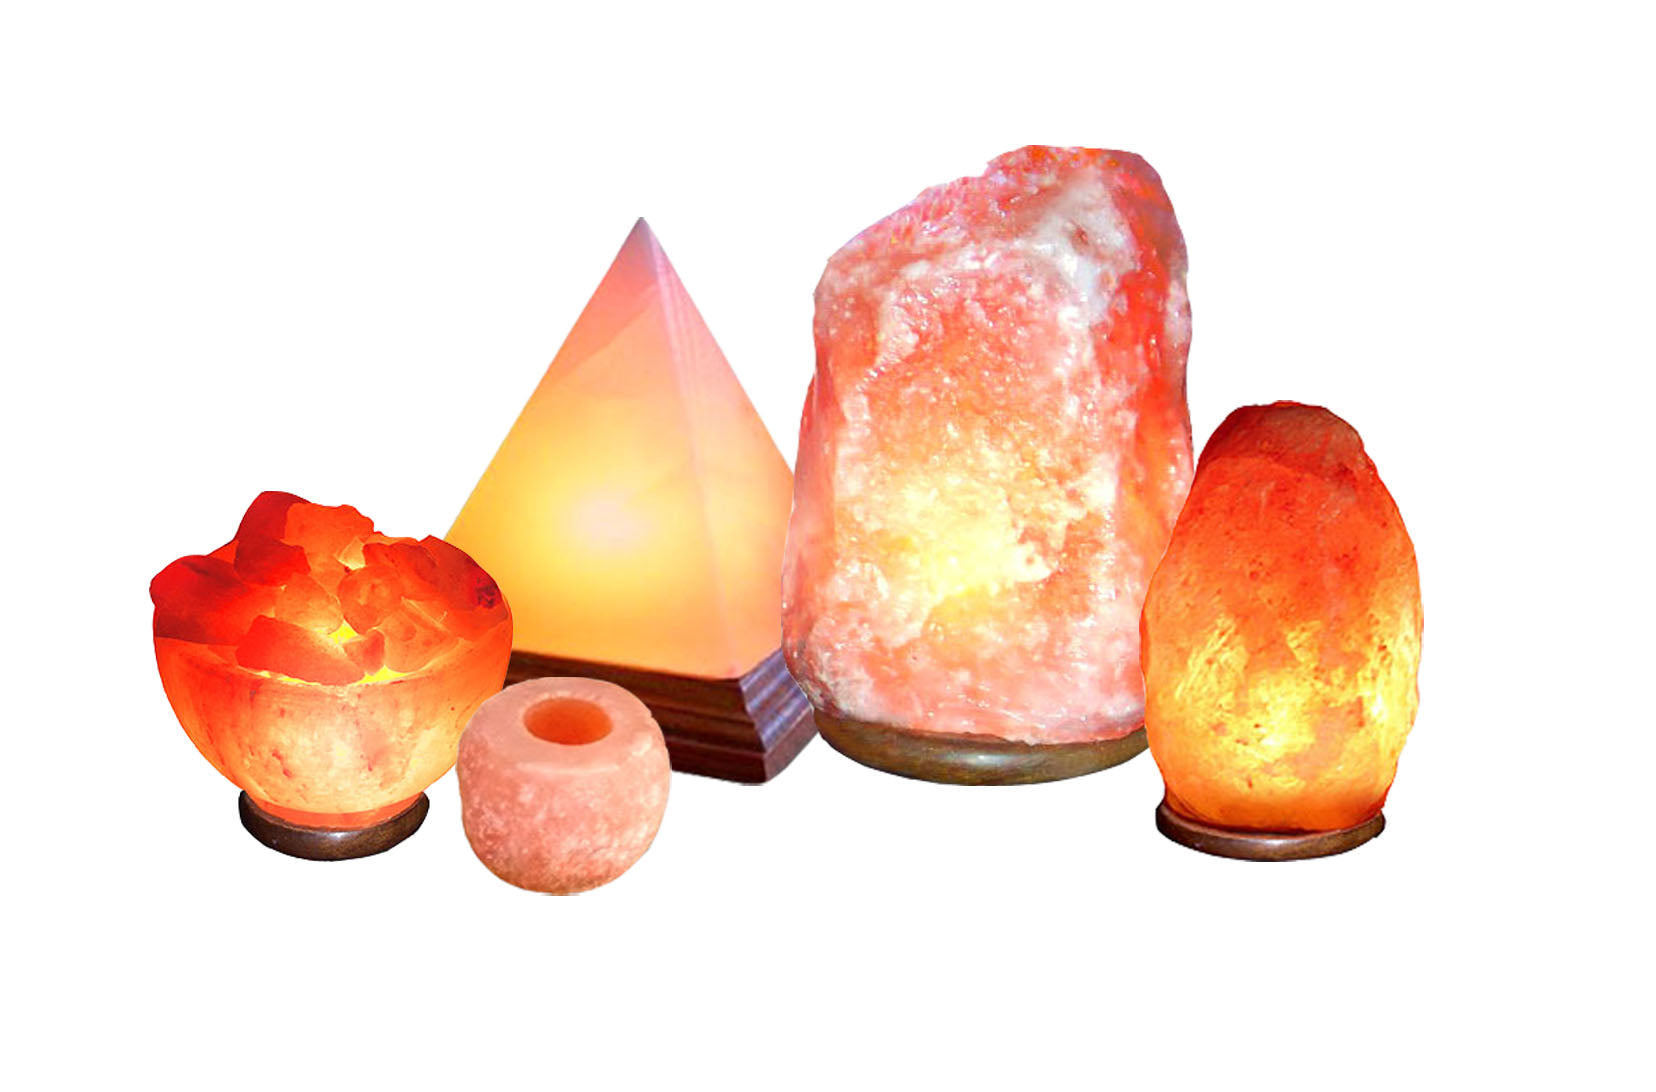 https://cdn.shopify.com/s/files/1/0983/0046/files/Himalaya-Salt-Collage.jpg?5167544044997142429